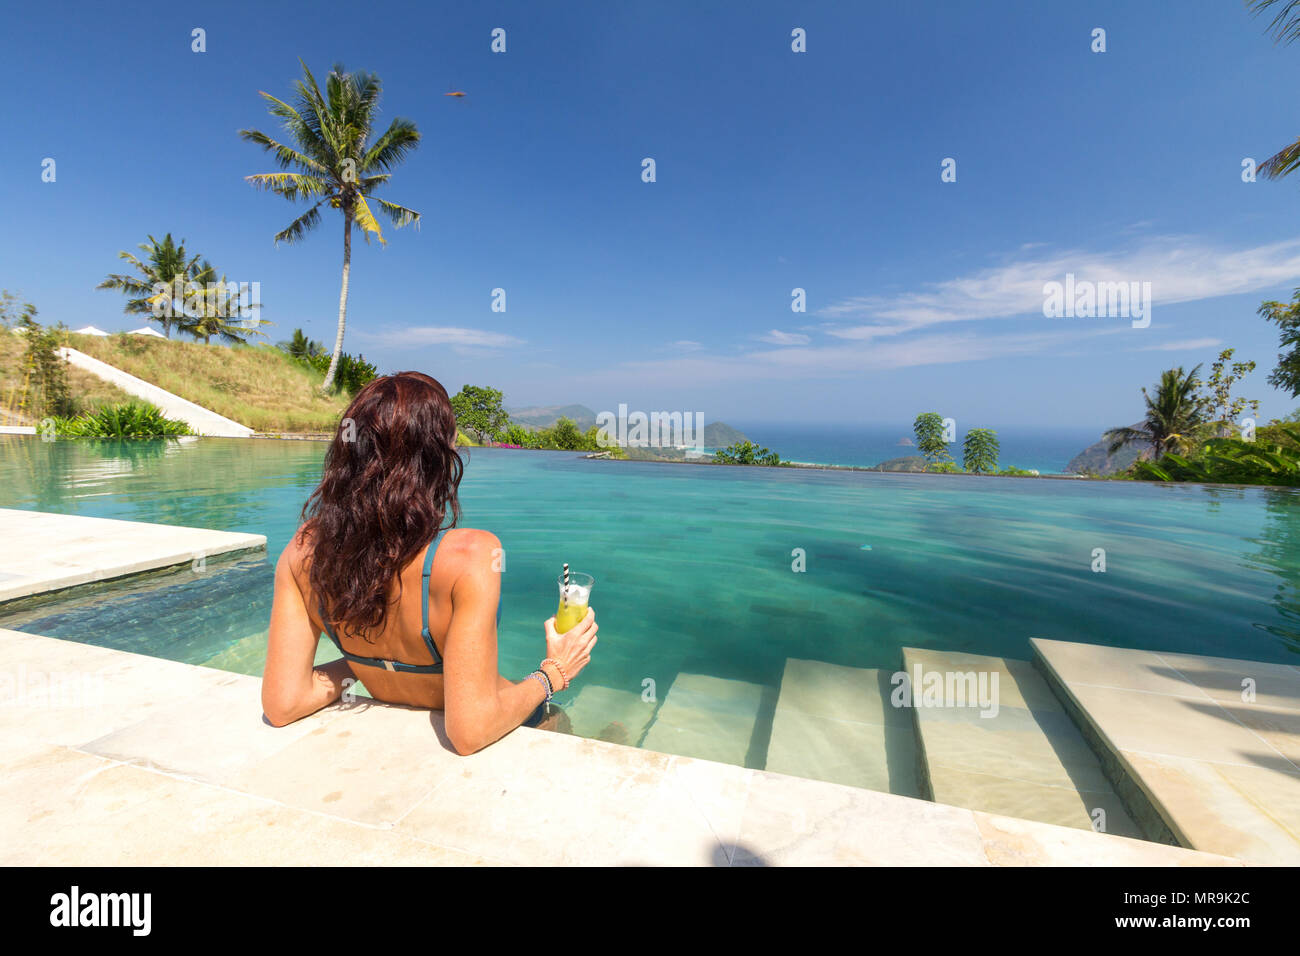 Girl at infinity pool - Stock Image